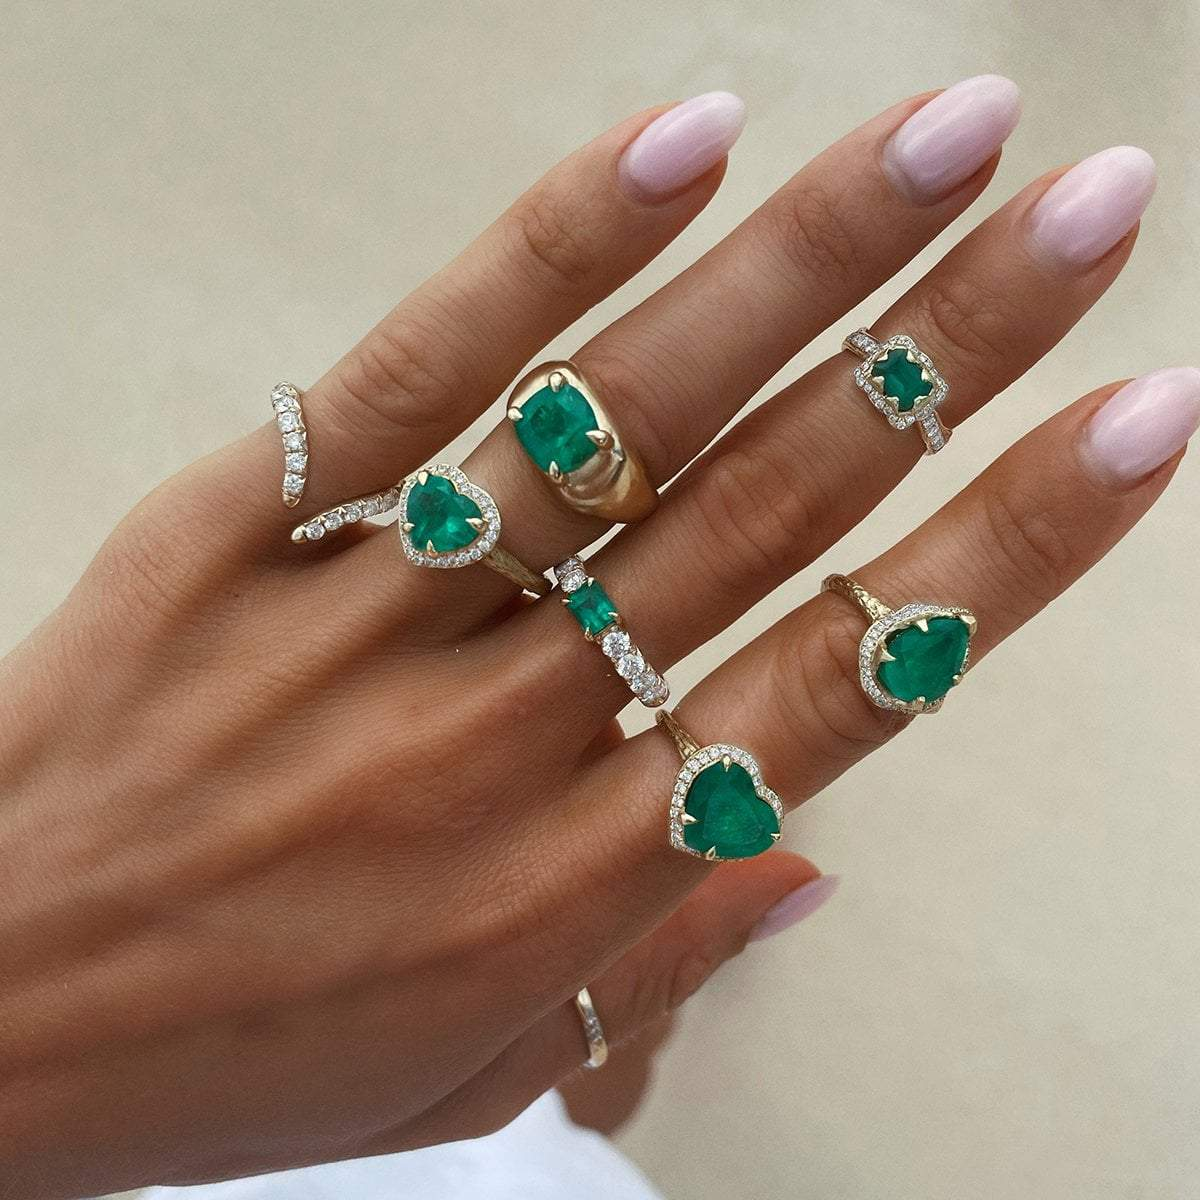 NEW! French Pavé Queen Cloud Fit Band with Emerald Center